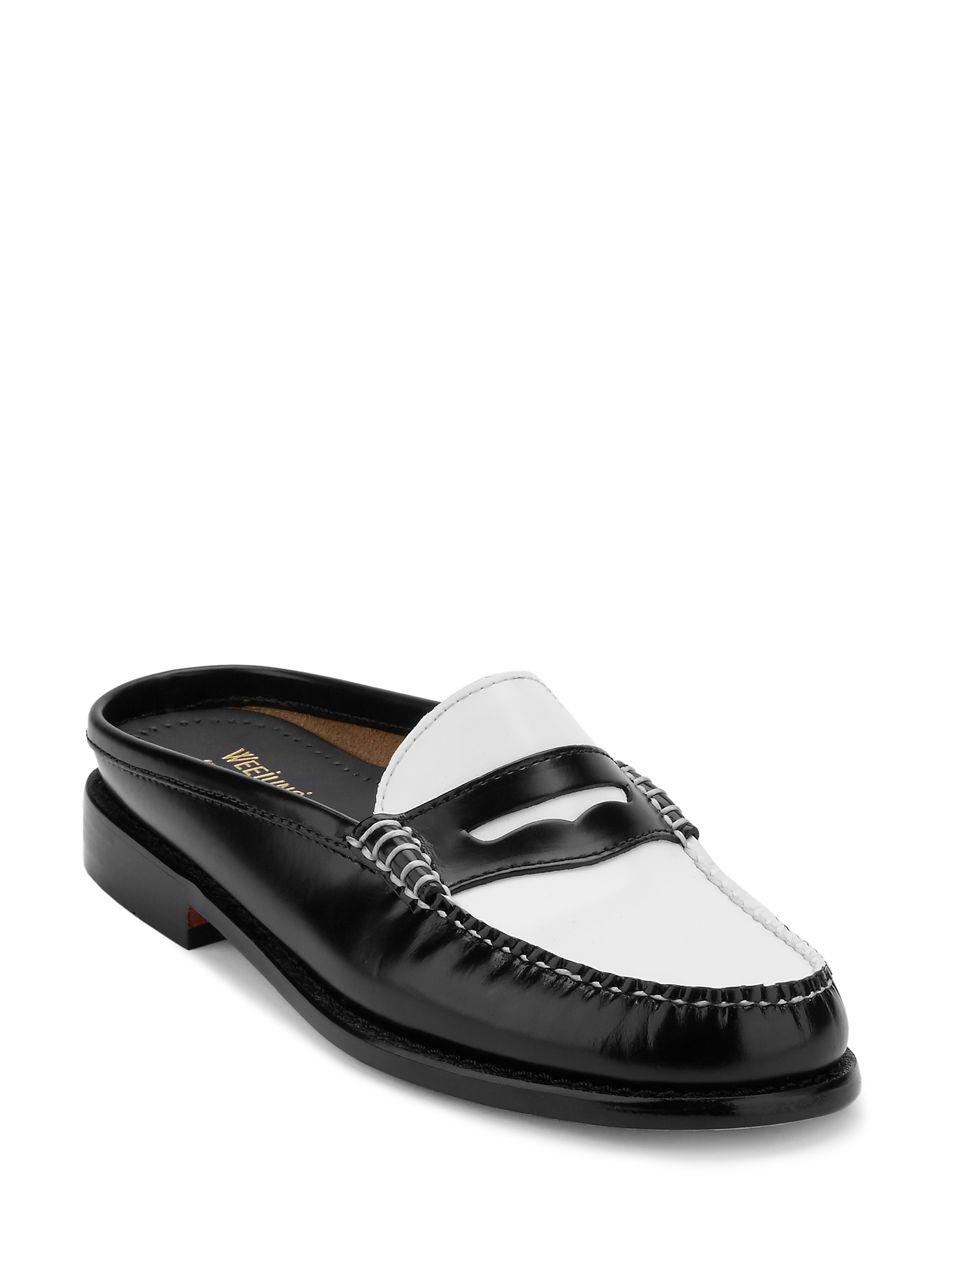 G.H. Bass & Co. Wynn Patent Leather Mule